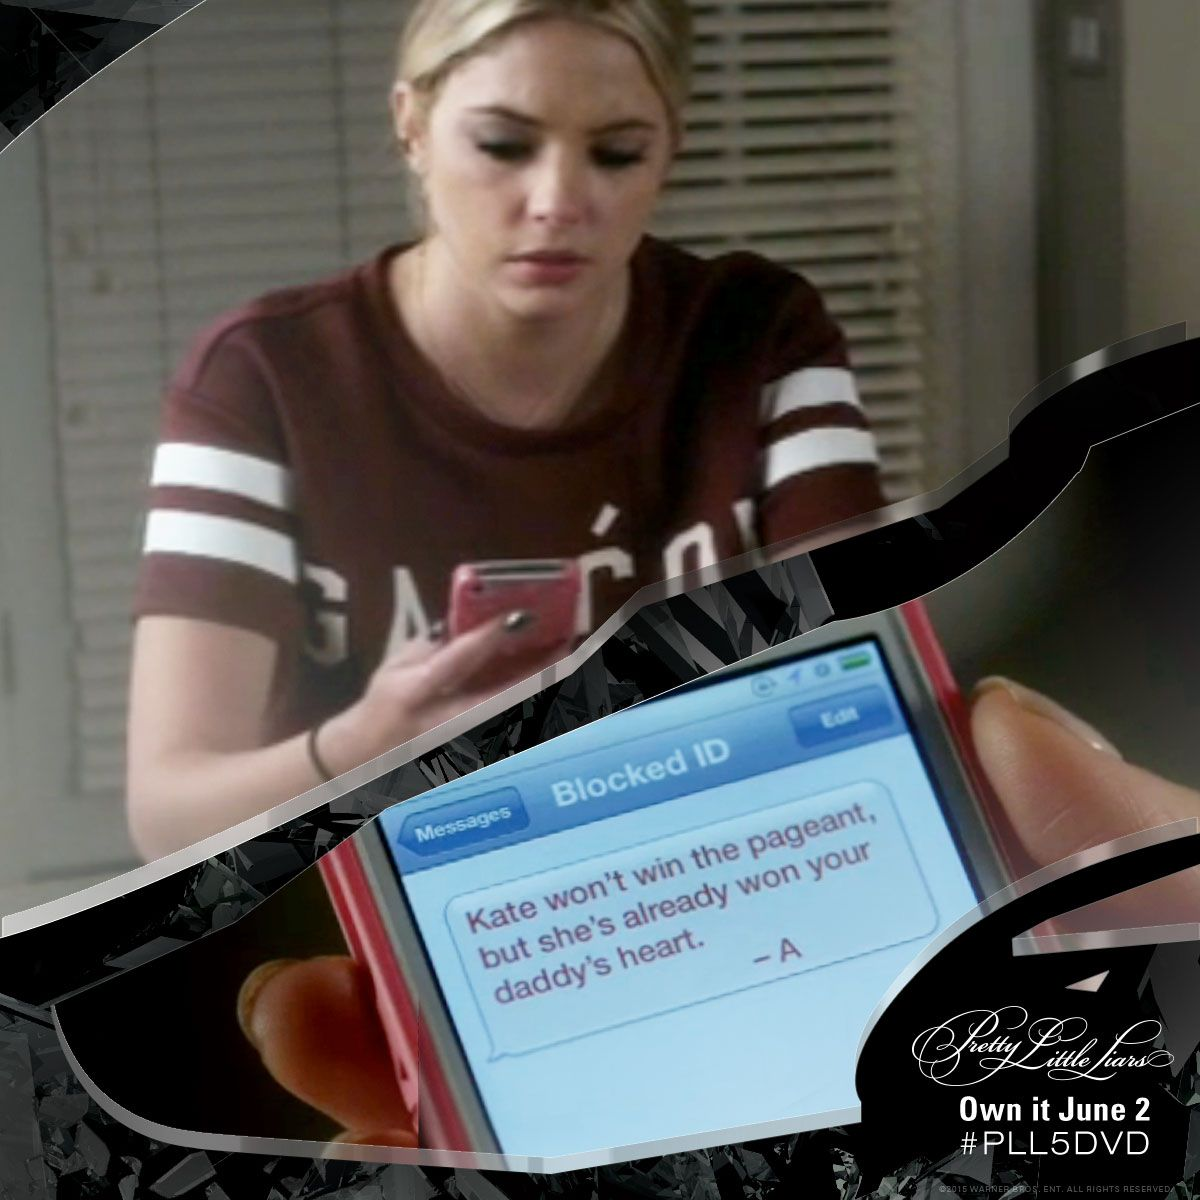 There is no part of Hannah's life that 'A' is afraid to touch. #PLL5DVD